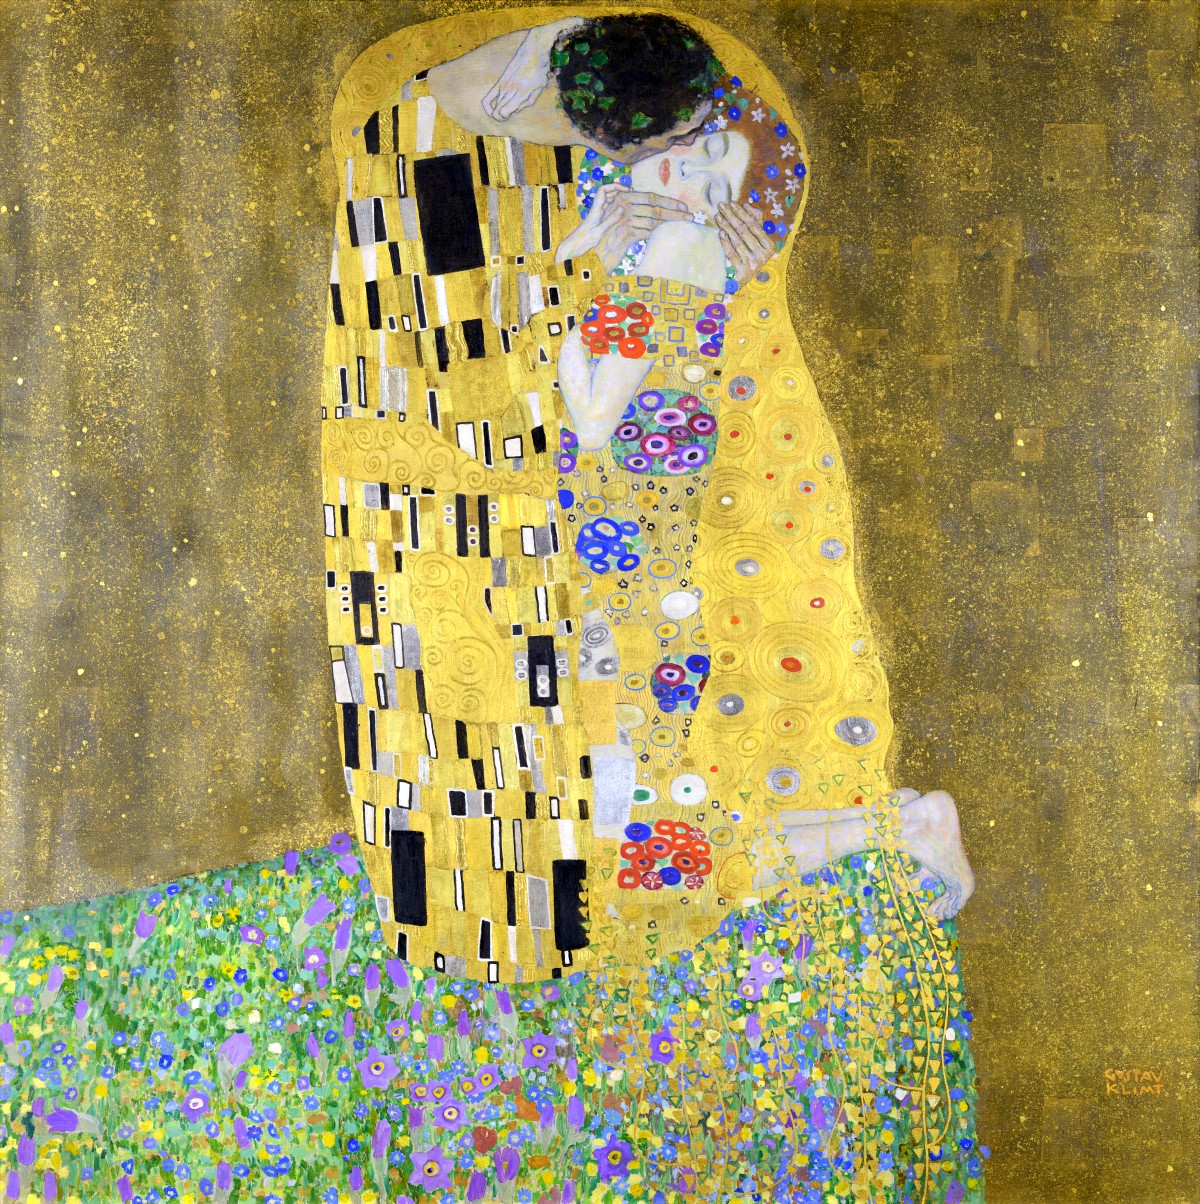 Gustav Klimt The Kiss Austria cult art arte deco art nouveau cultstories.altervista.org